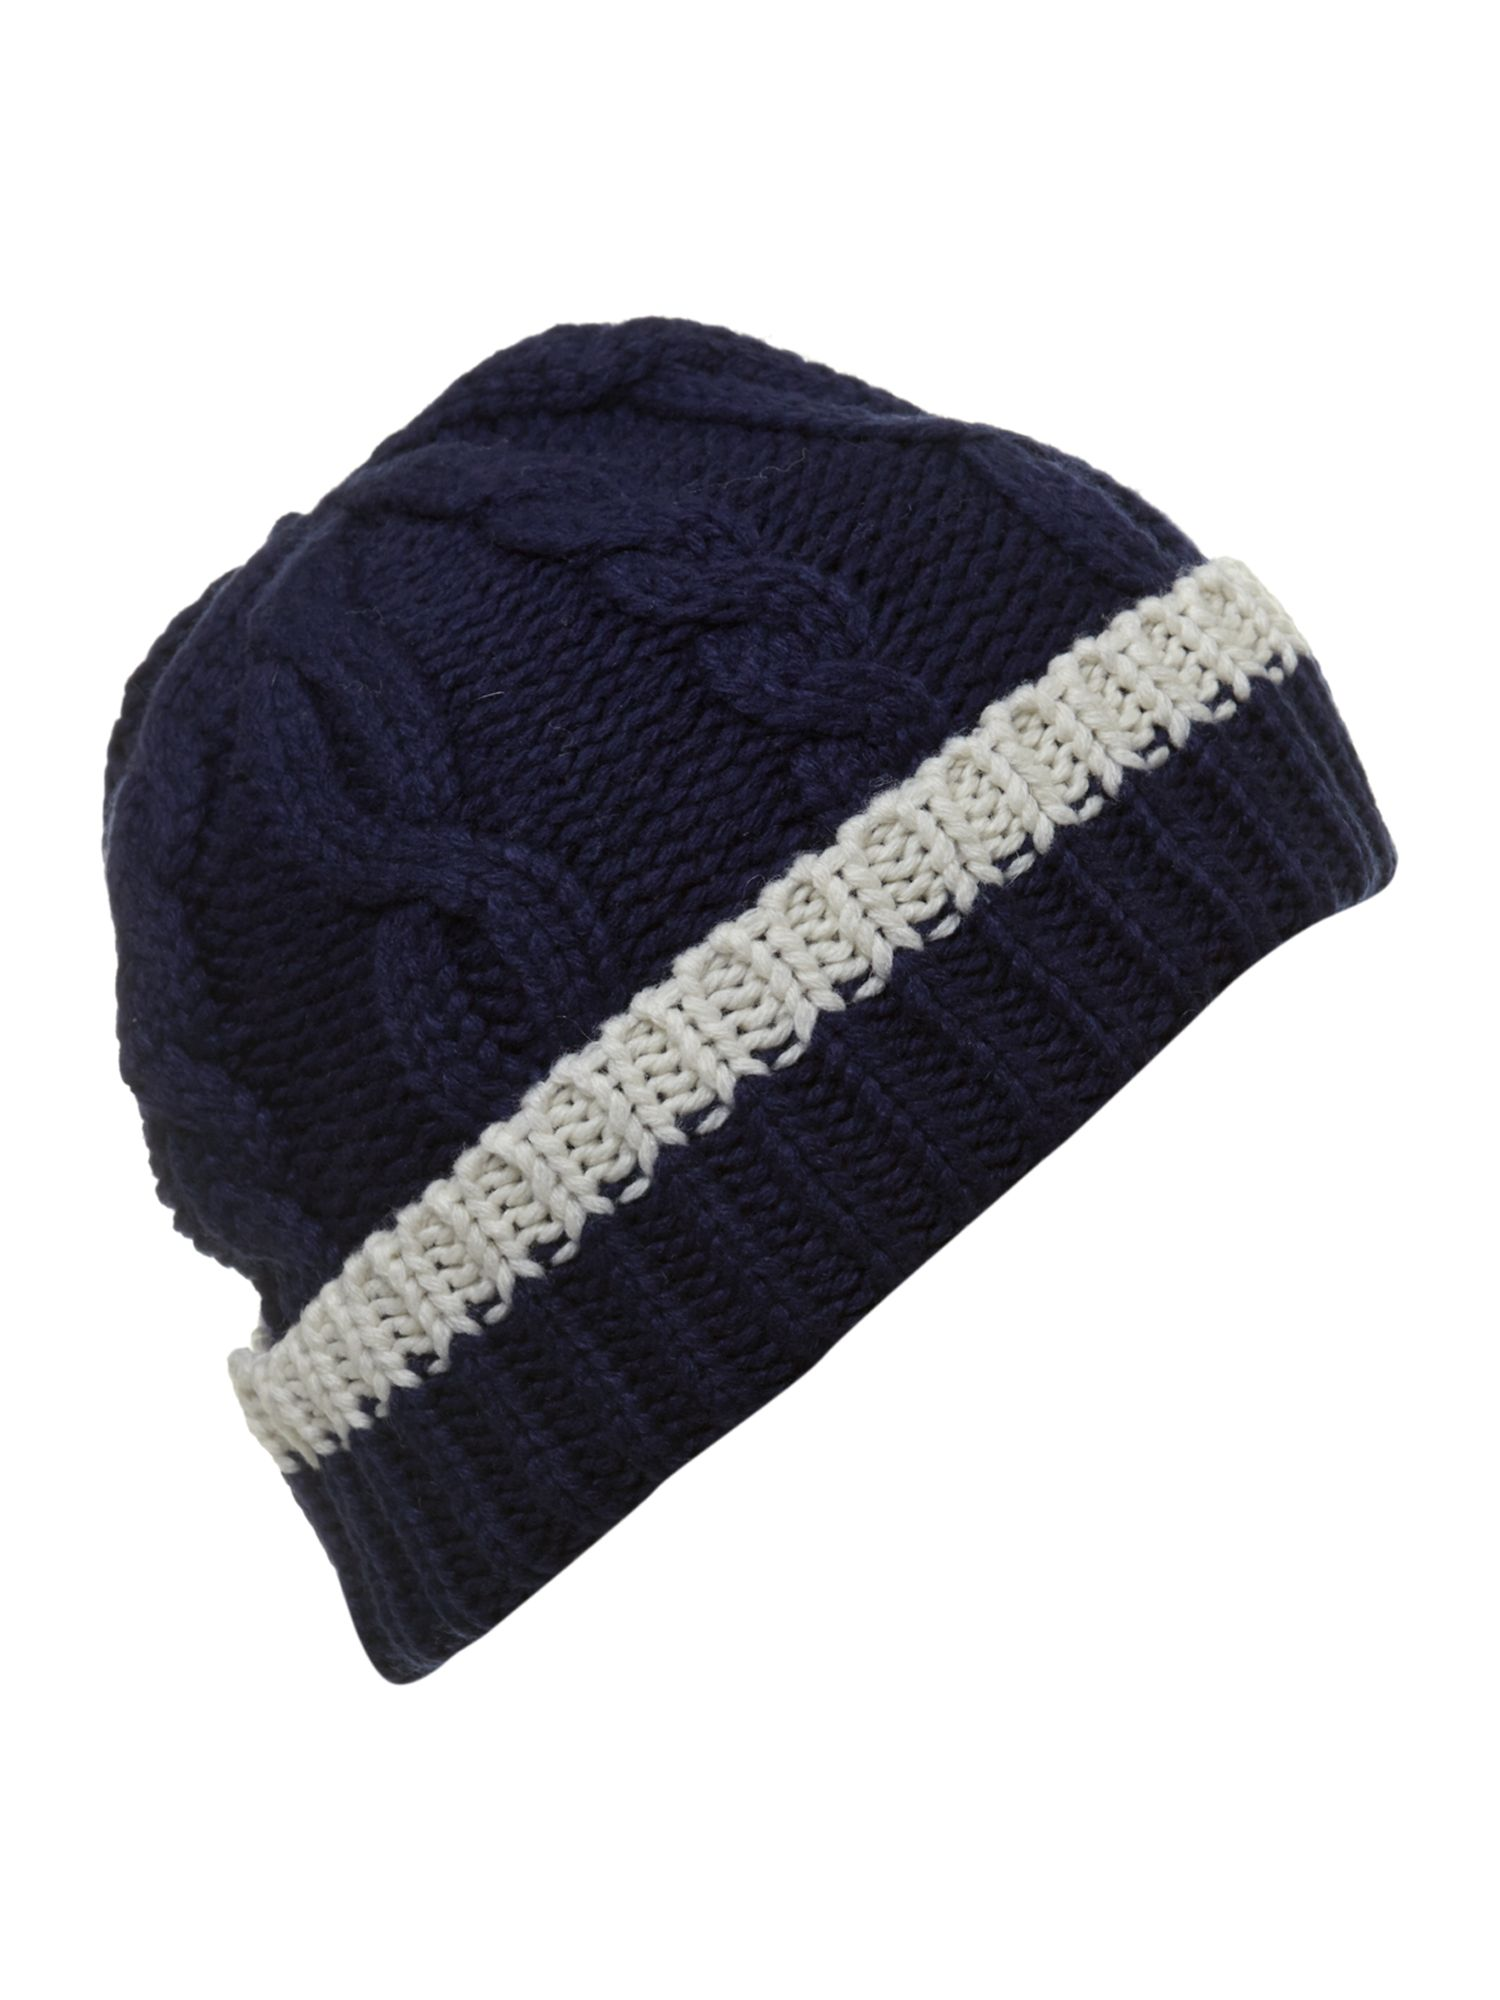 Westby cable knit beanie hat